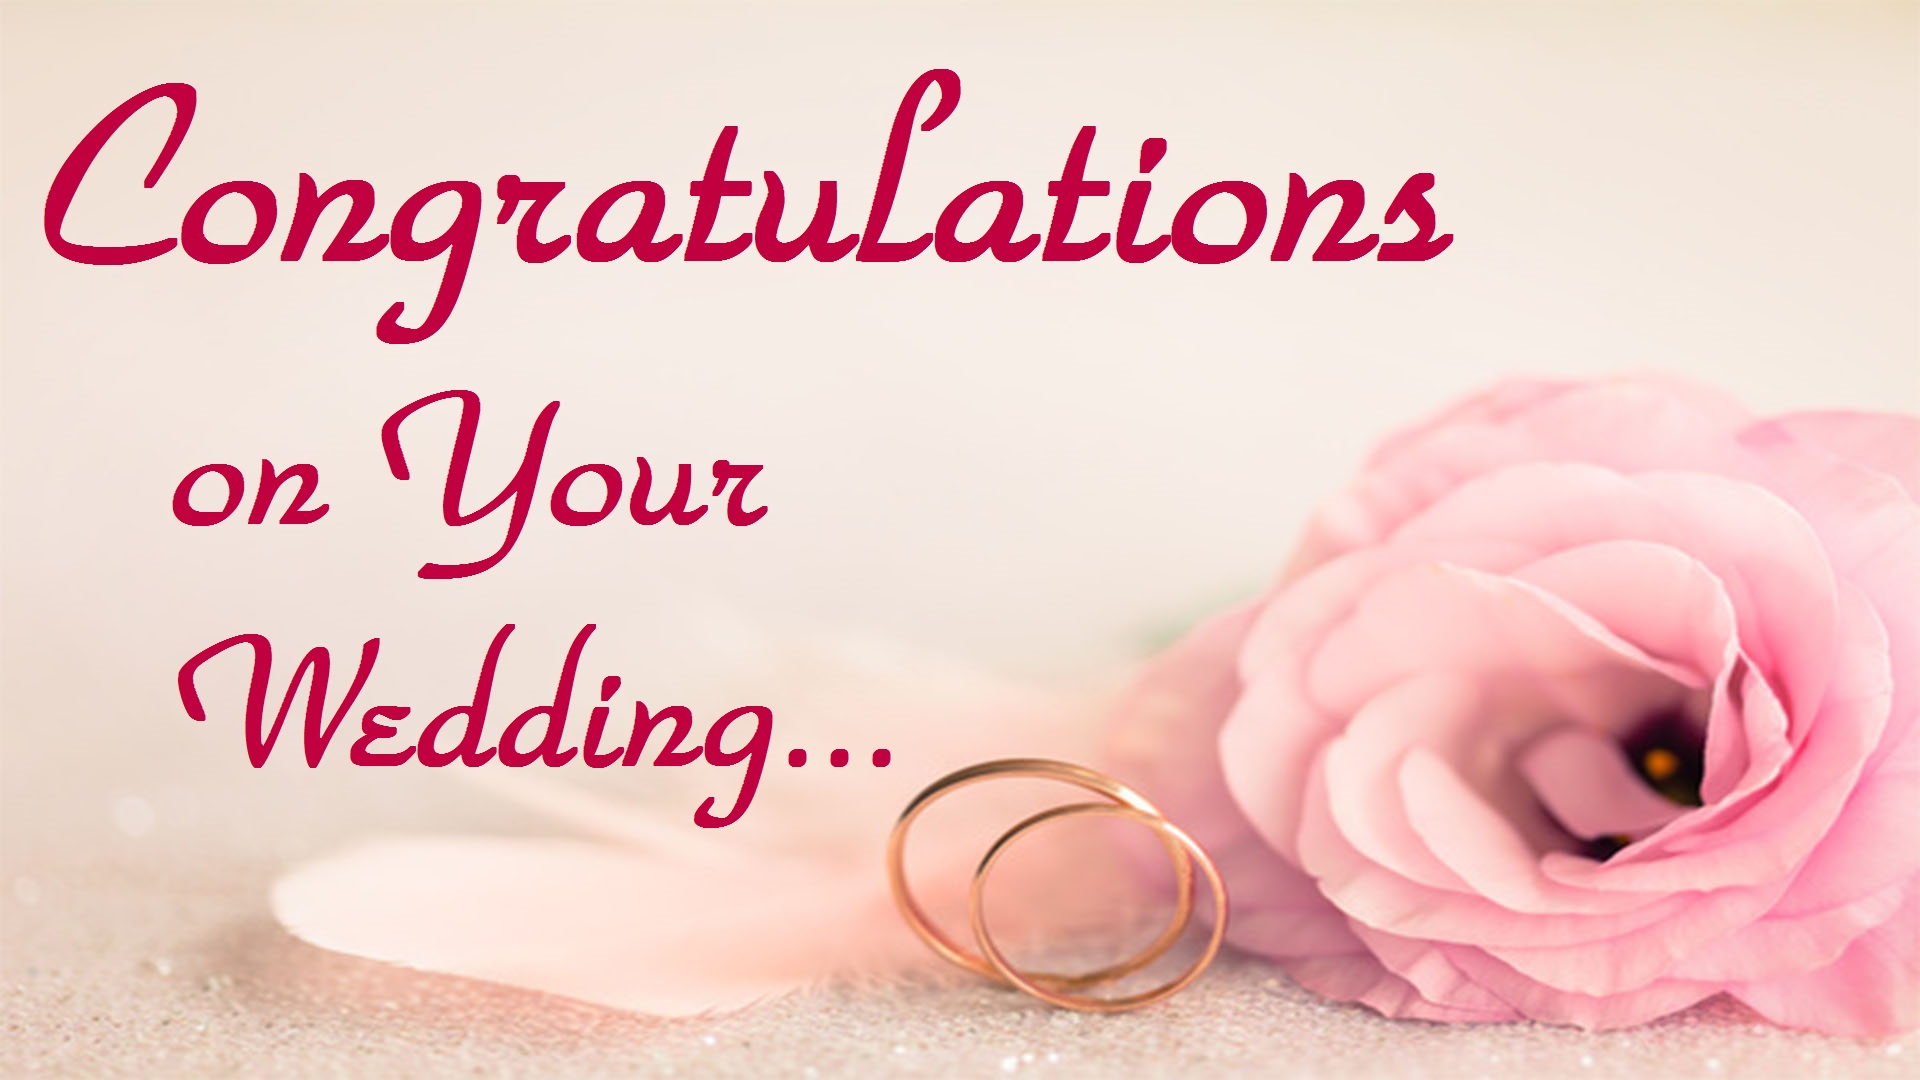 Wedding Congratulations Images Hd Pictures Wedding Greeting Cards